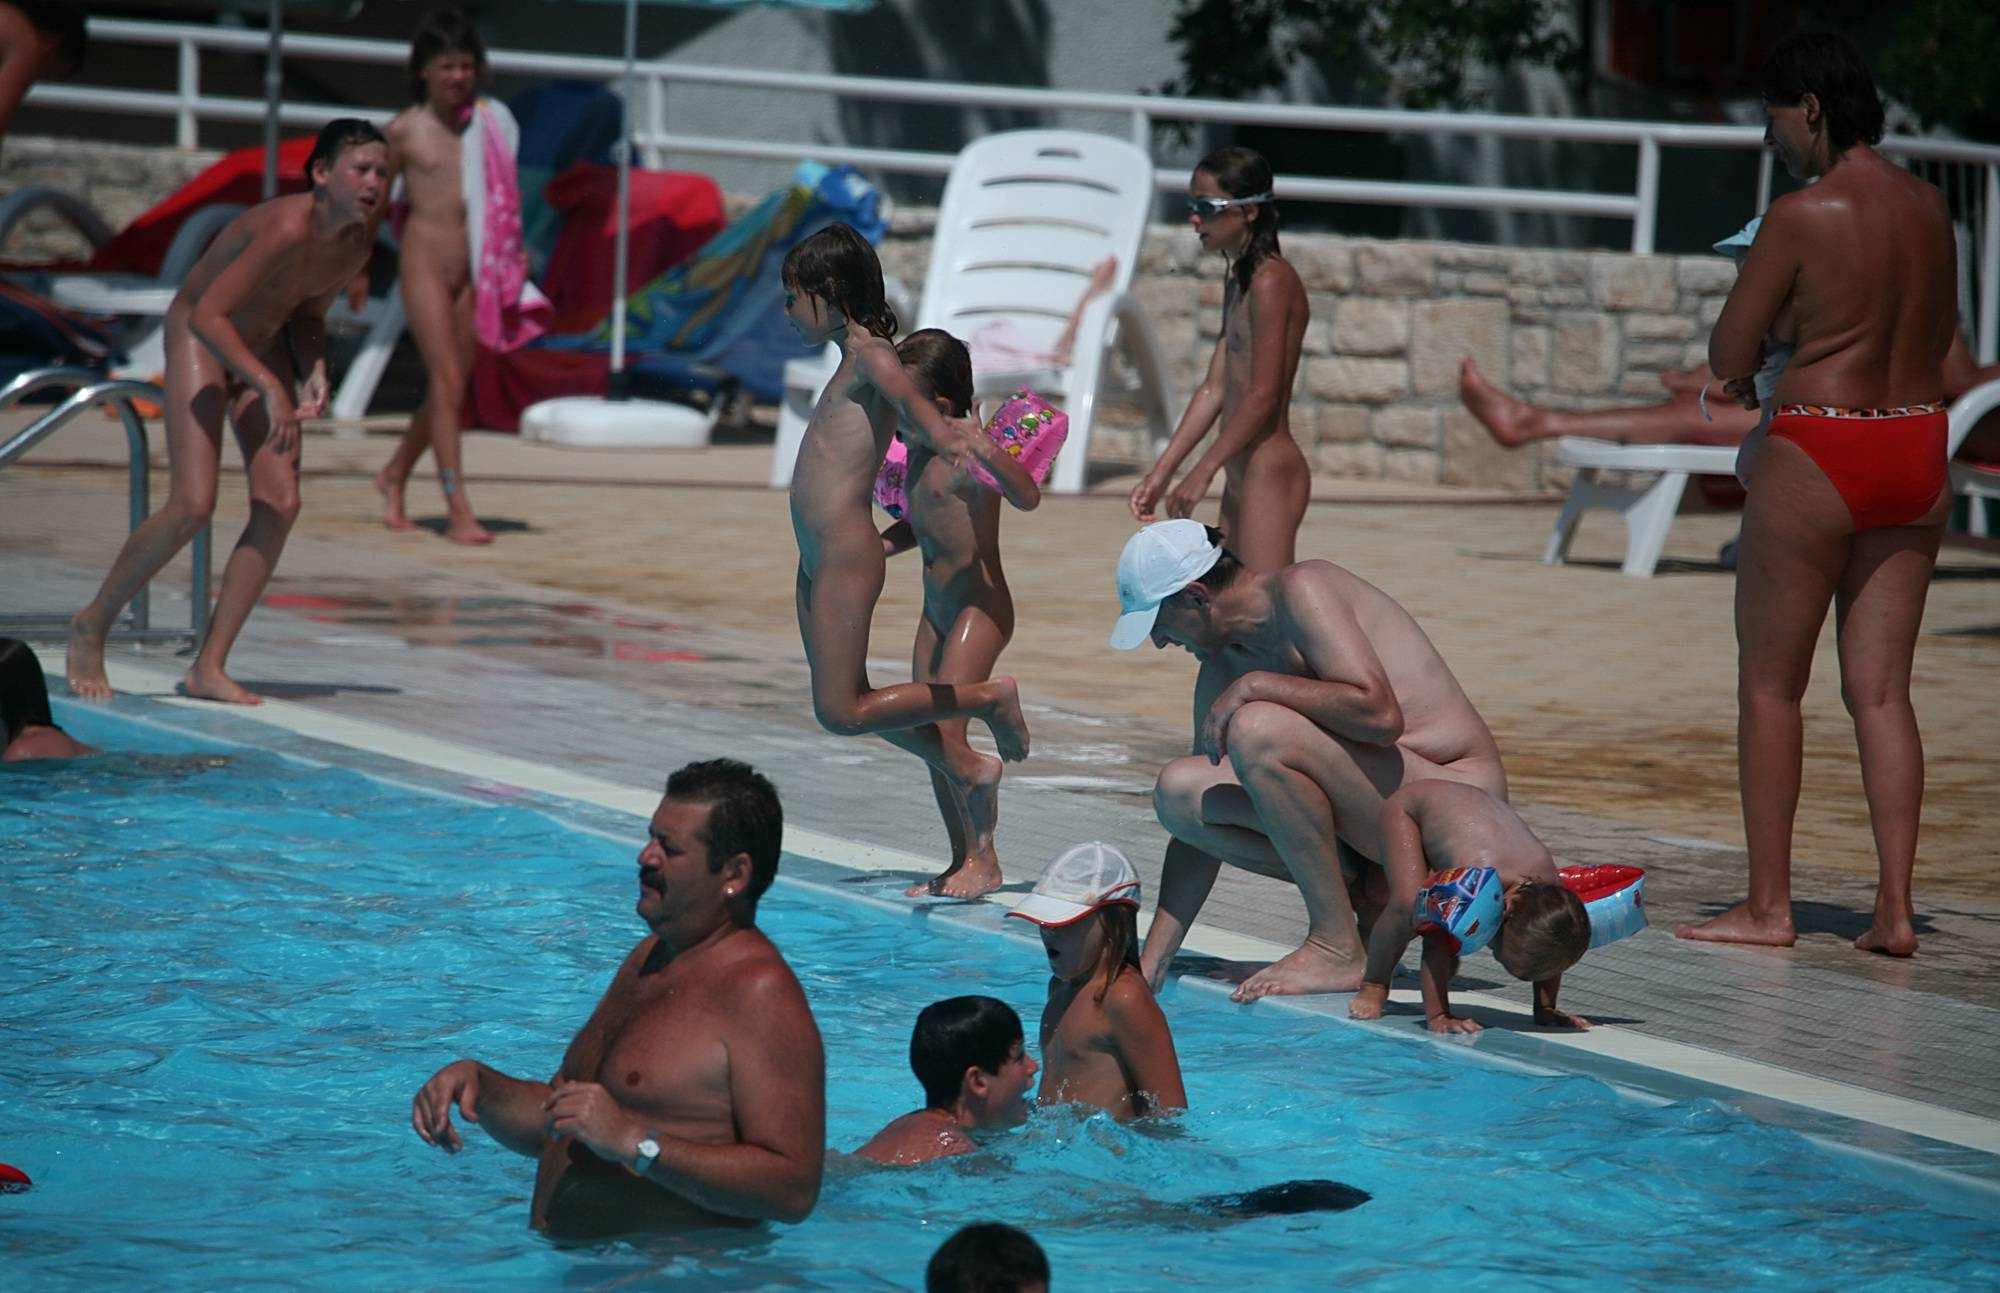 Nudist Pictures Large Pool Gatherings - 1